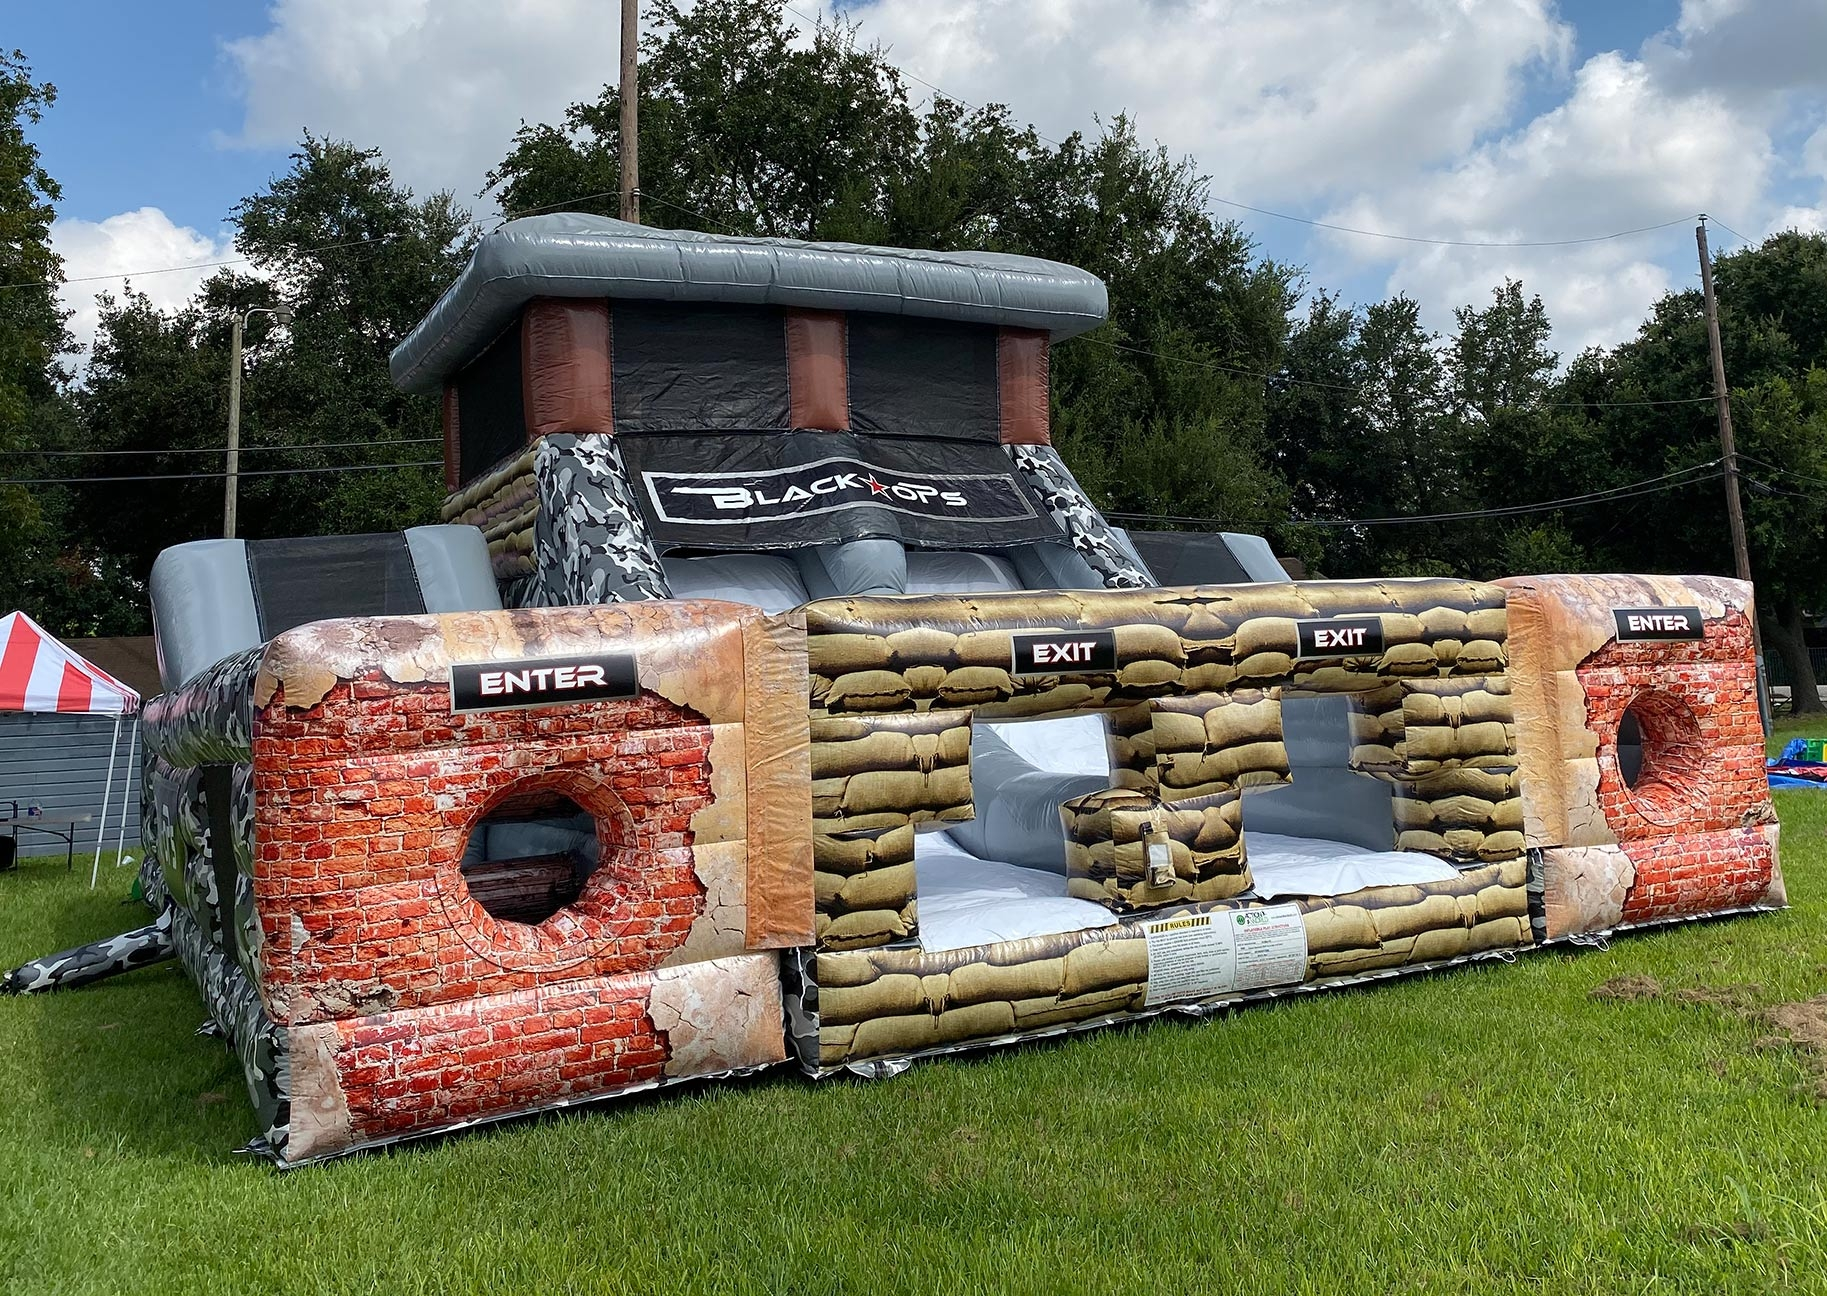 Military Black Ops Bouncy Castle